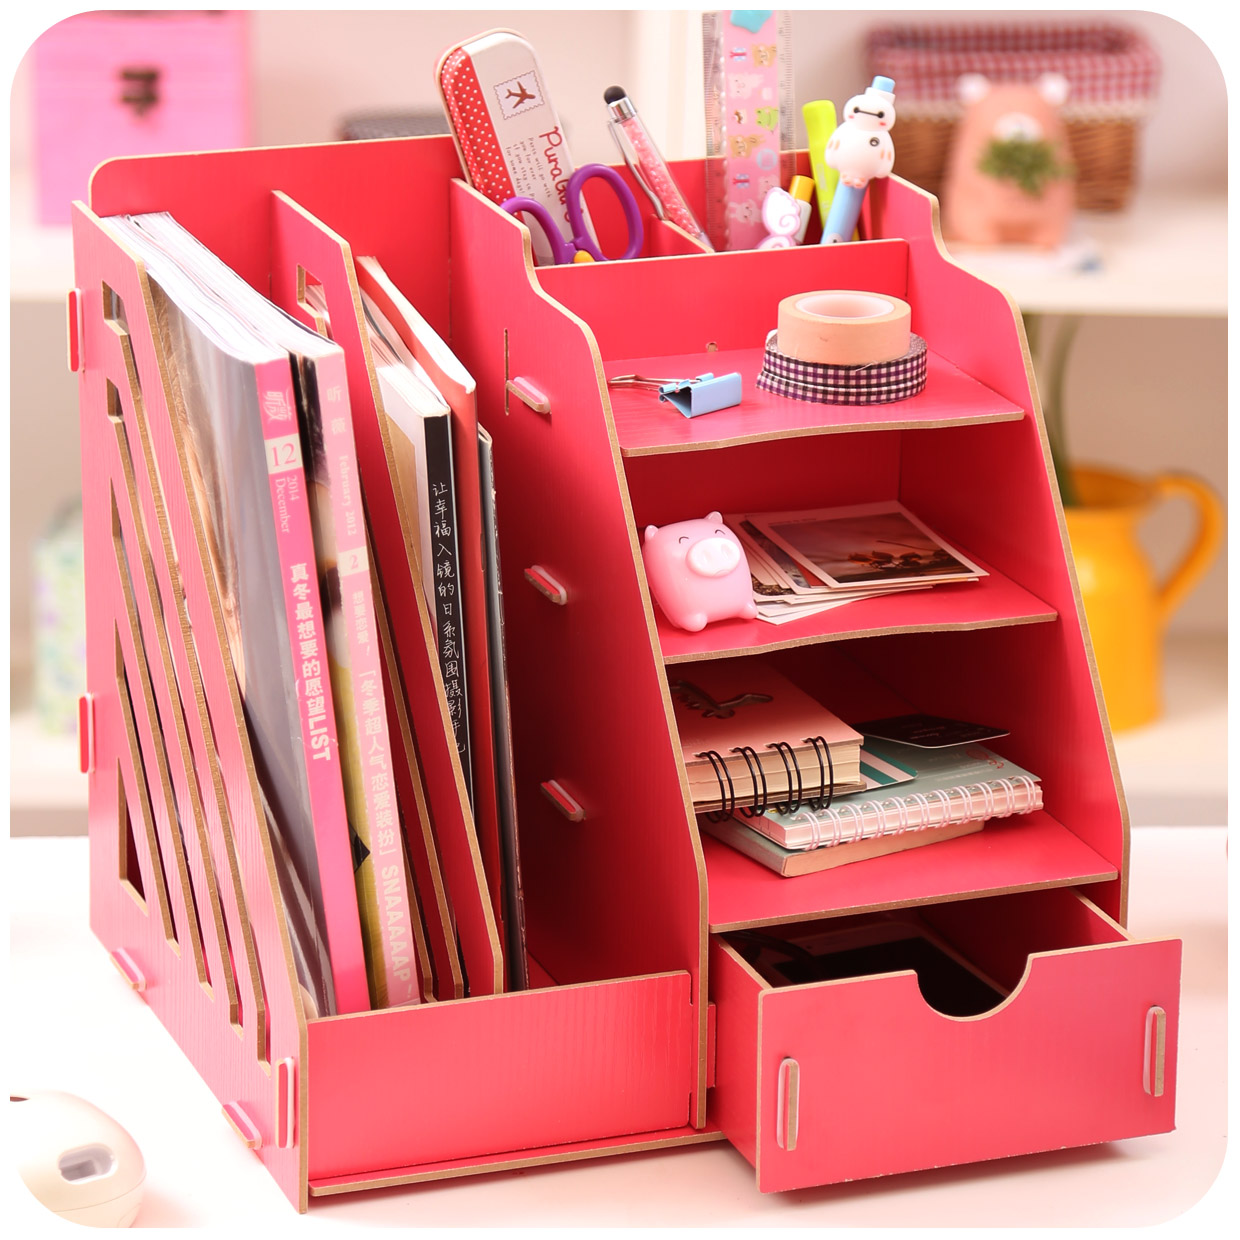 Compare Prices on Diy Magazine Rack Online ShoppingBuy Low Price